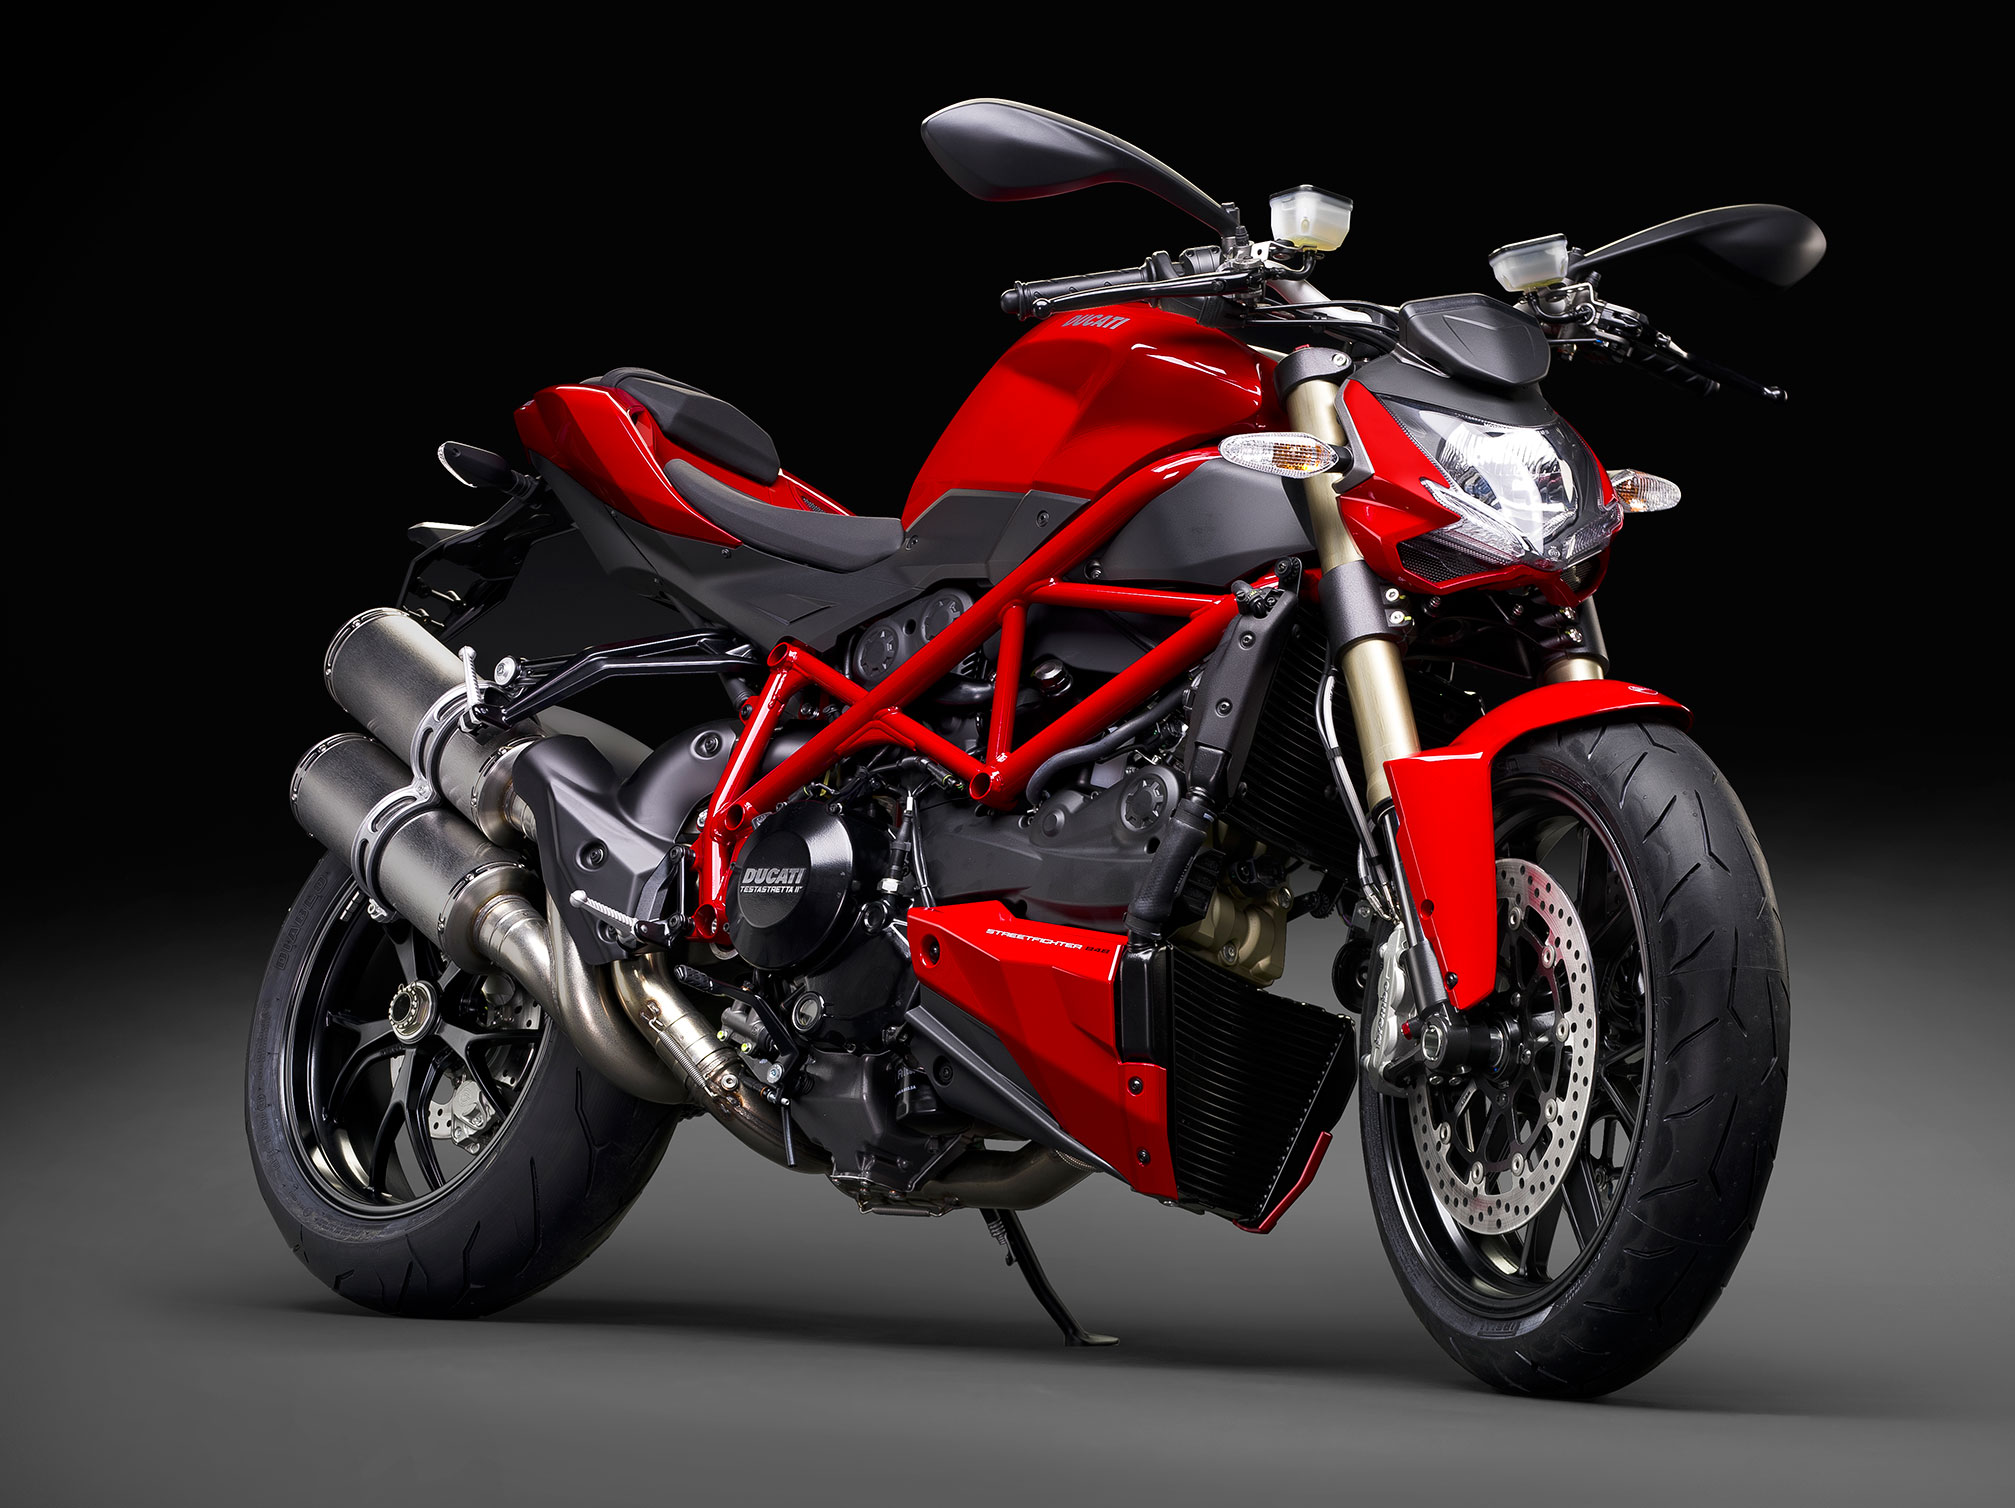 Delicieux ... Ducati Streetfighter 848 2015 Wallpapers #13408 ...